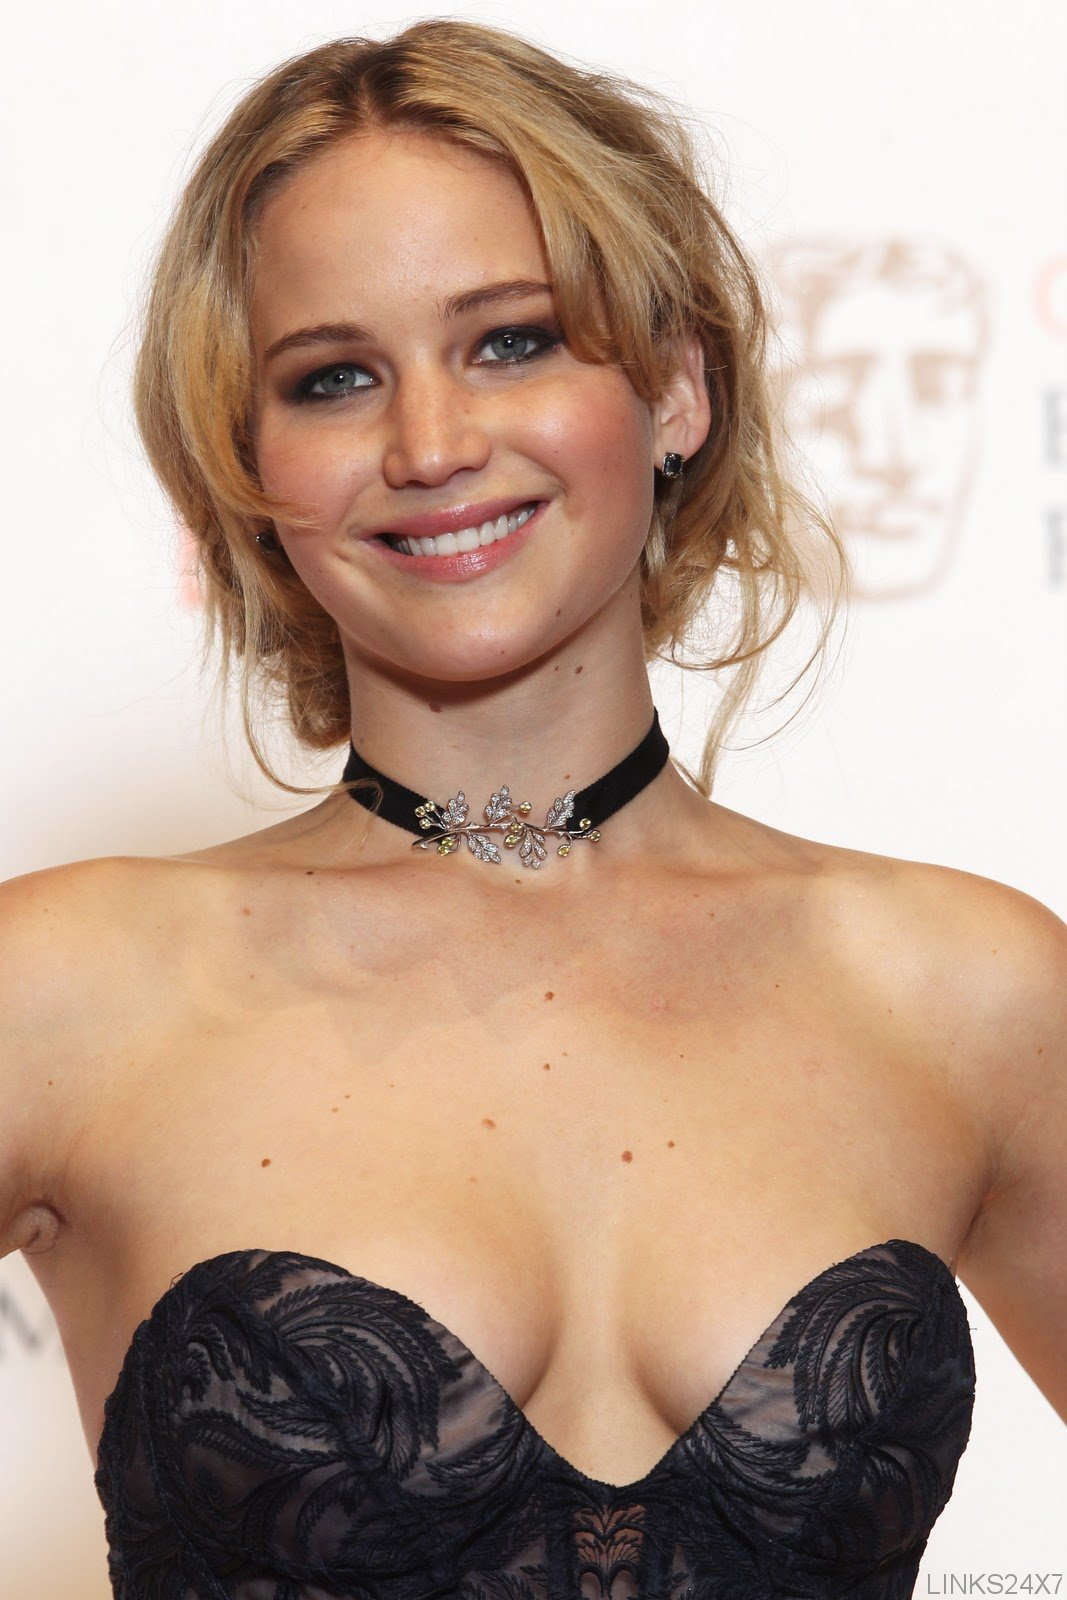 Jennifer Lawrence Makeup Tutorial: Jennifer Lawrence Hot Photos